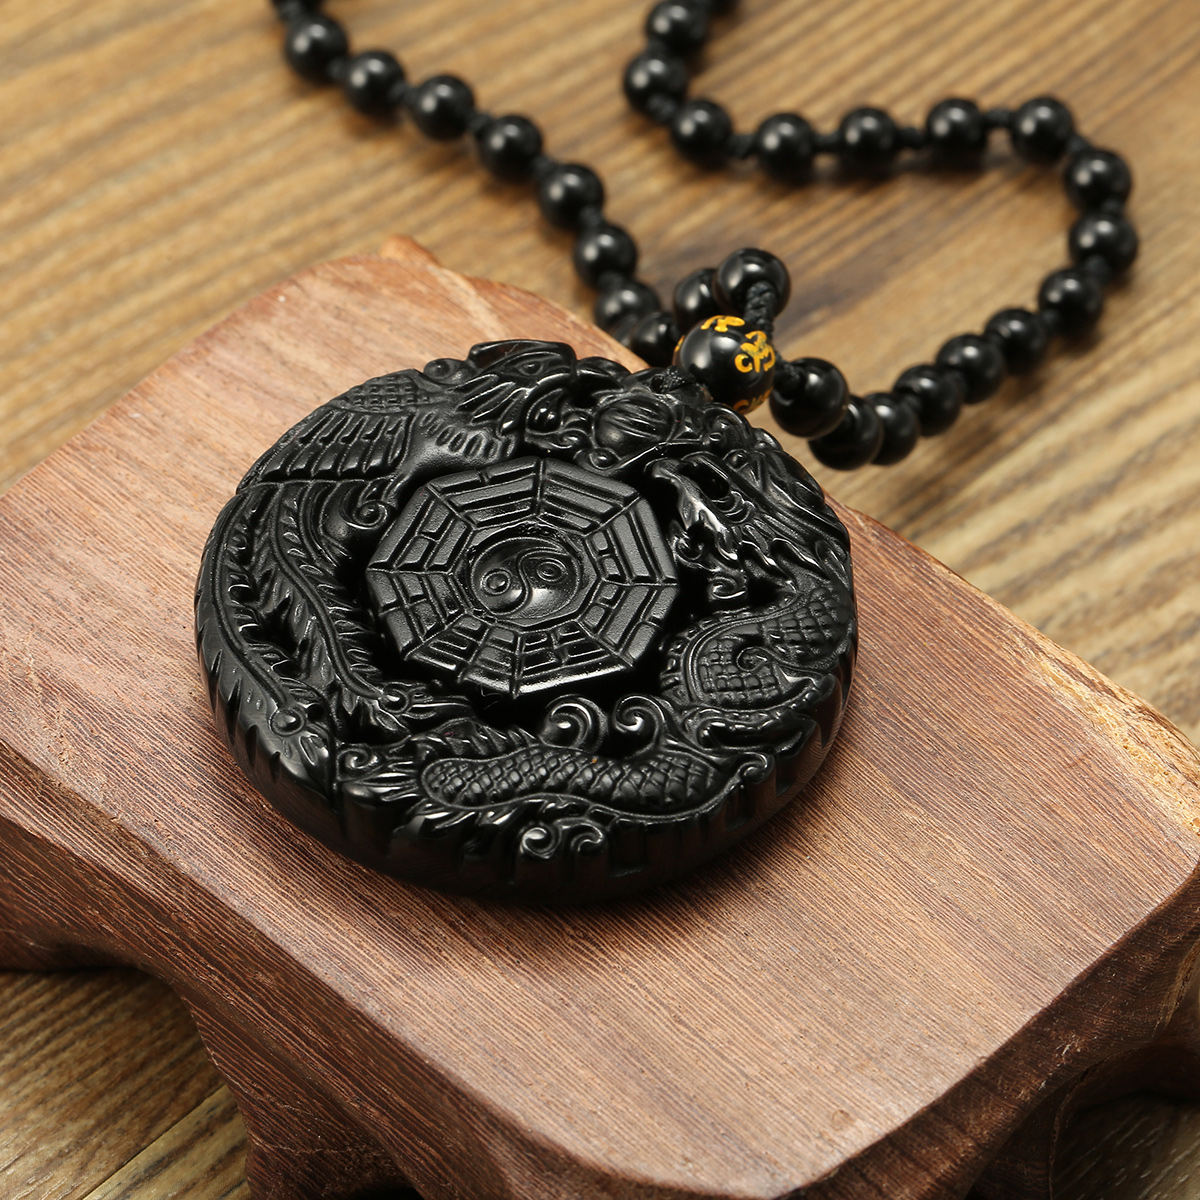 Black Obsidian Lucky Pendant Tai Ji Necklace Chain for Men Women Gift